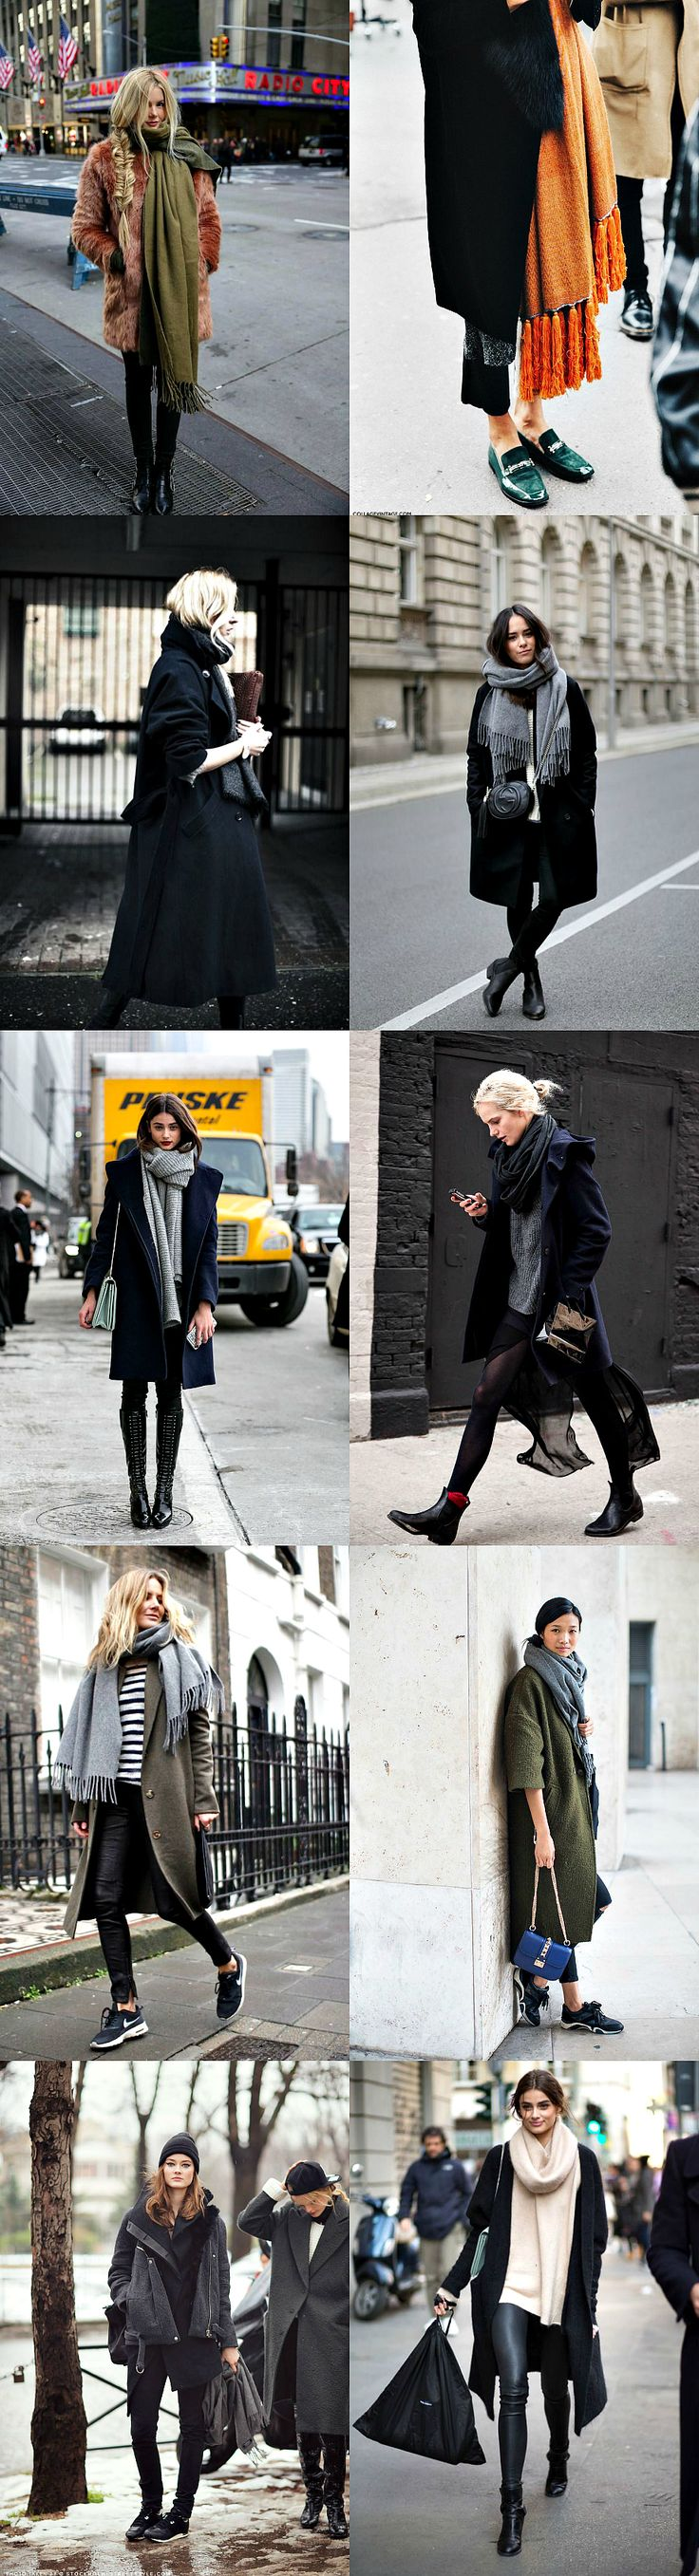 I would wear that...big coats and bulky scarves. - Bliss